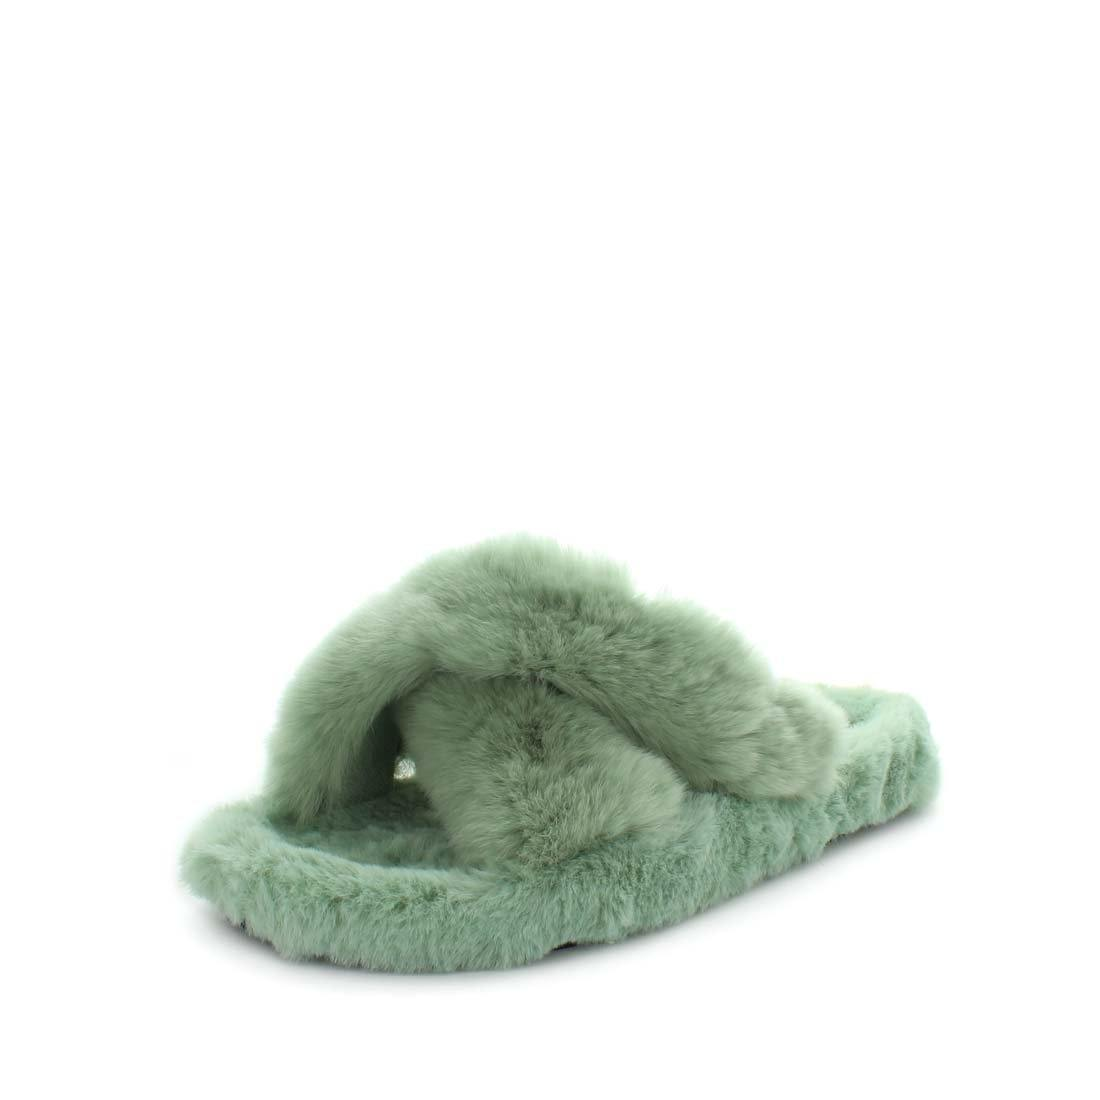 Ezzy by panda slippers - rabbit faux fur lining upper lining and sock - extra soft womens slippers slide style with cross over upper - womens slippers - womens soft slippers - summer slippers